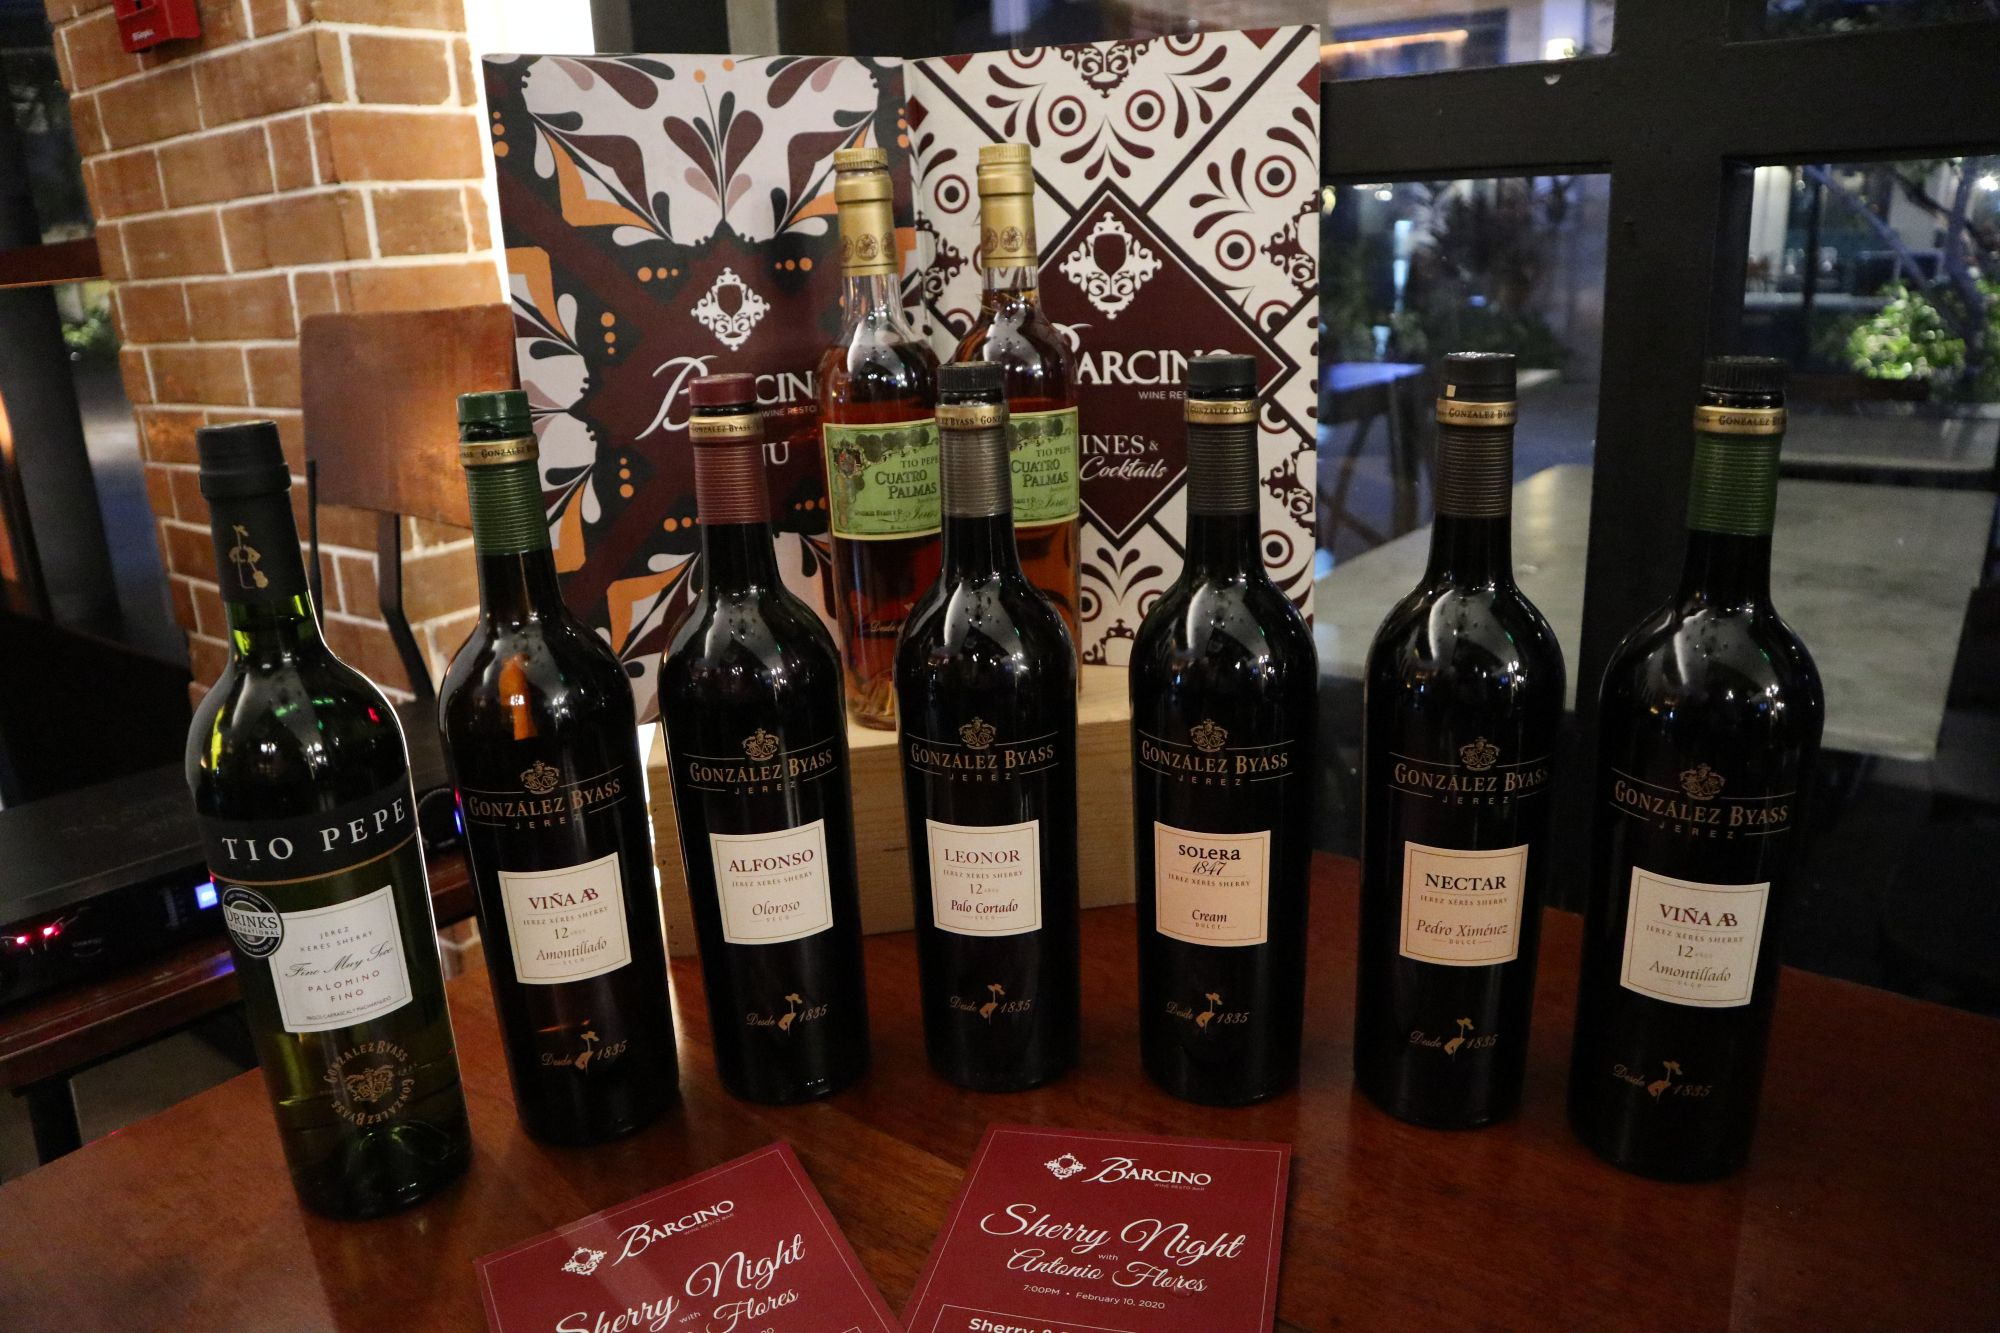 Barcino Holds Its Very First Sherry Night With Antonio Flores